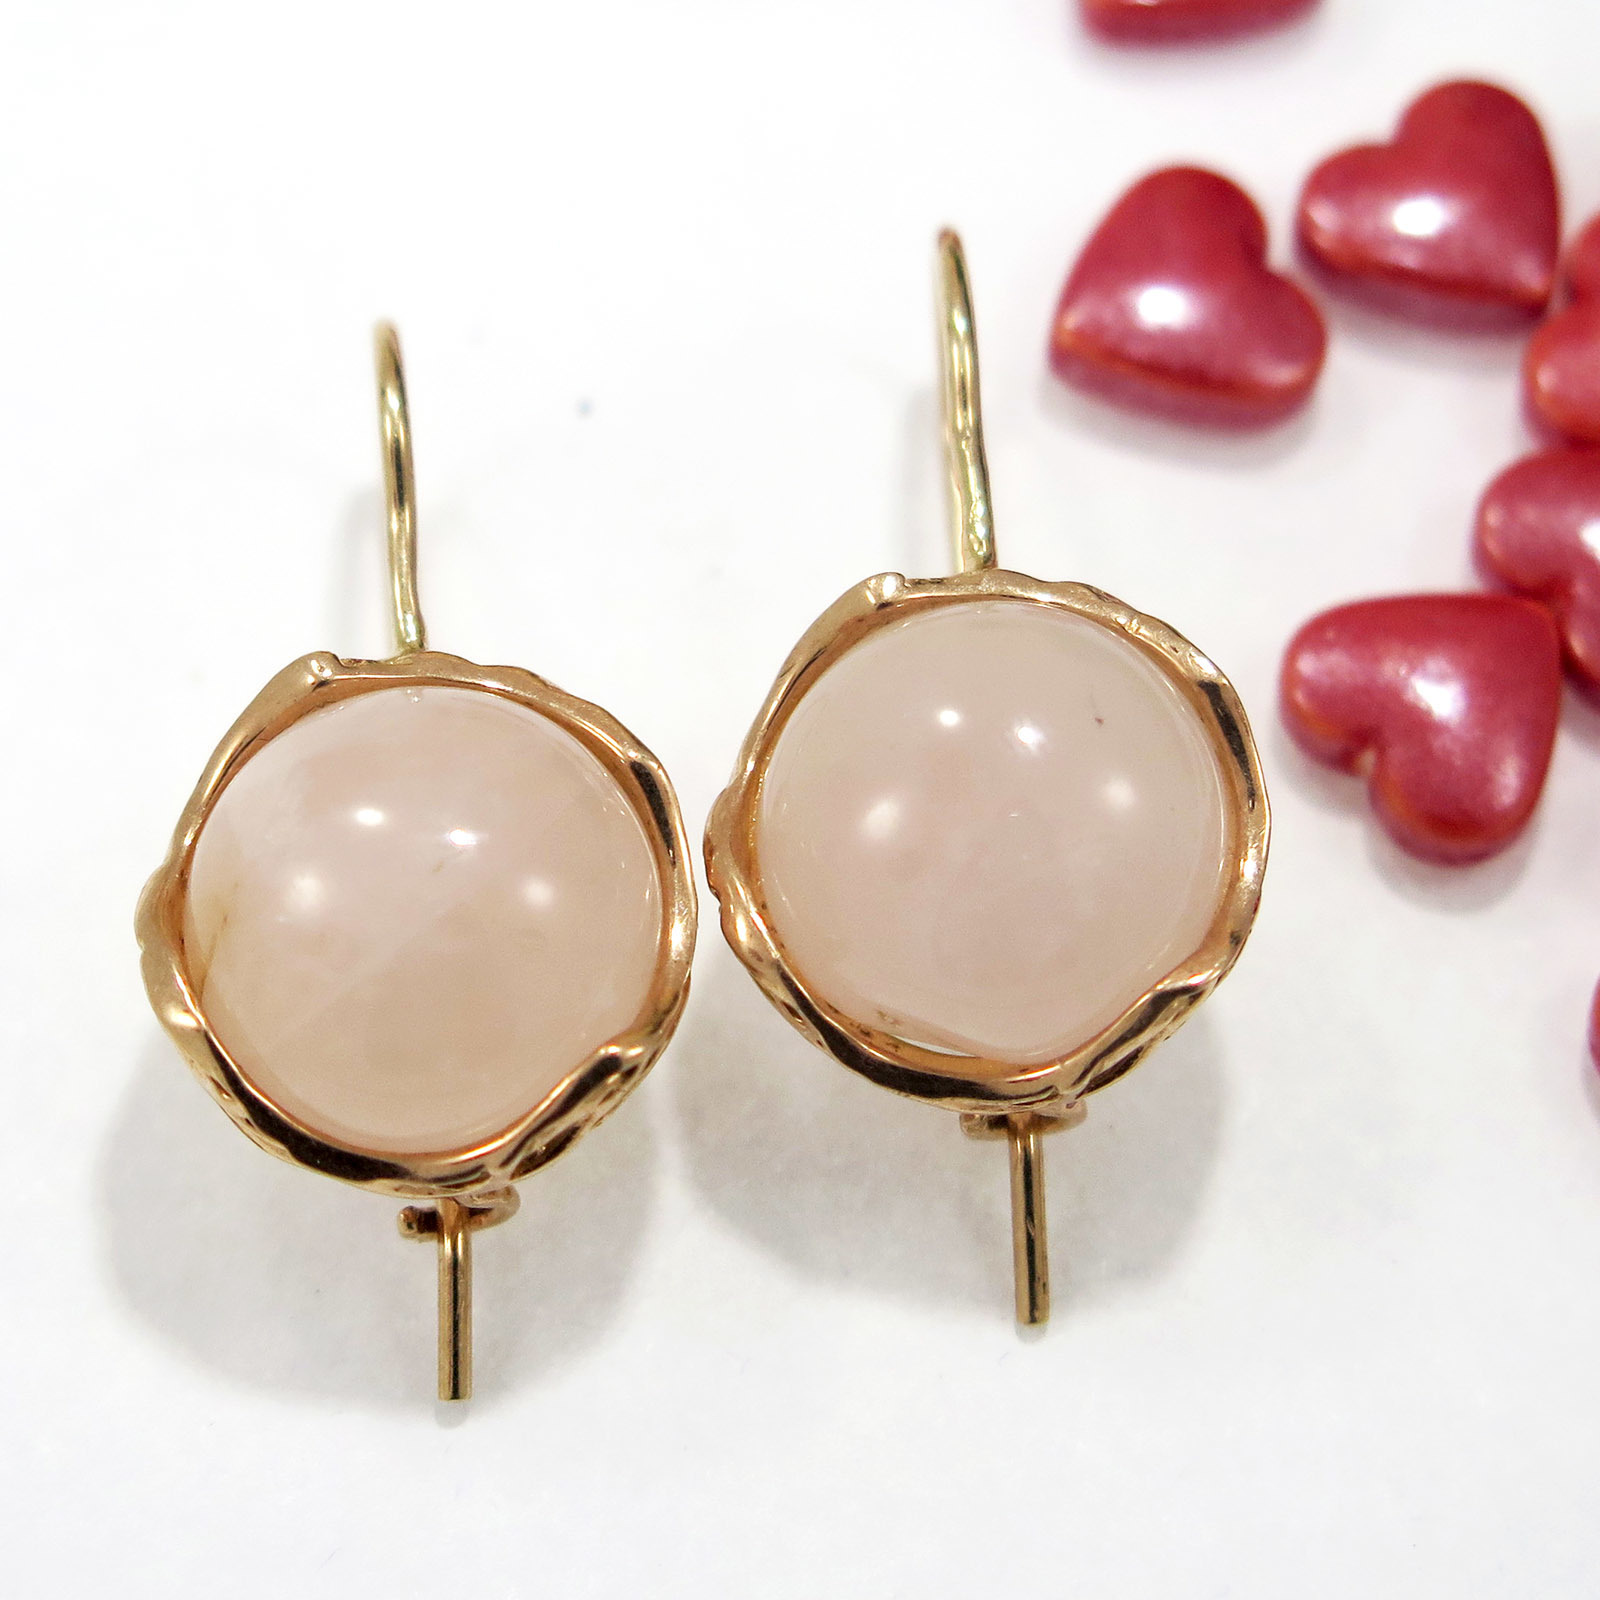 earrings vintage women gold dhgate d from oreilles drop dangle earring boucles hot com long pearl product selling for